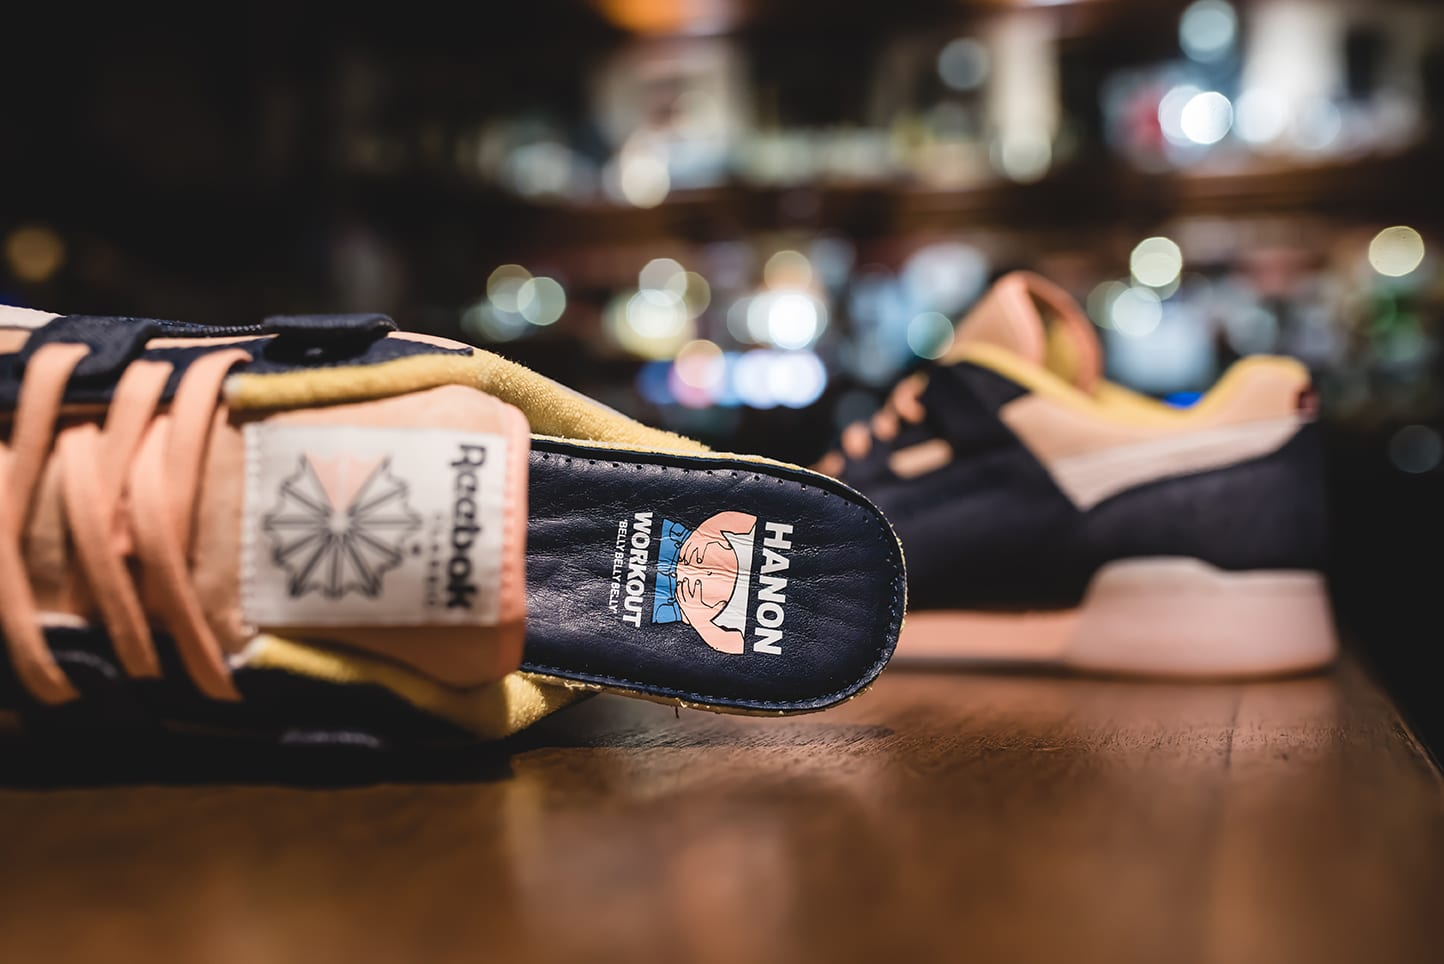 Hanon x Reebok Workout Lo Plus 'Belly's Gonna Get Ya' BS7771 (Insole)